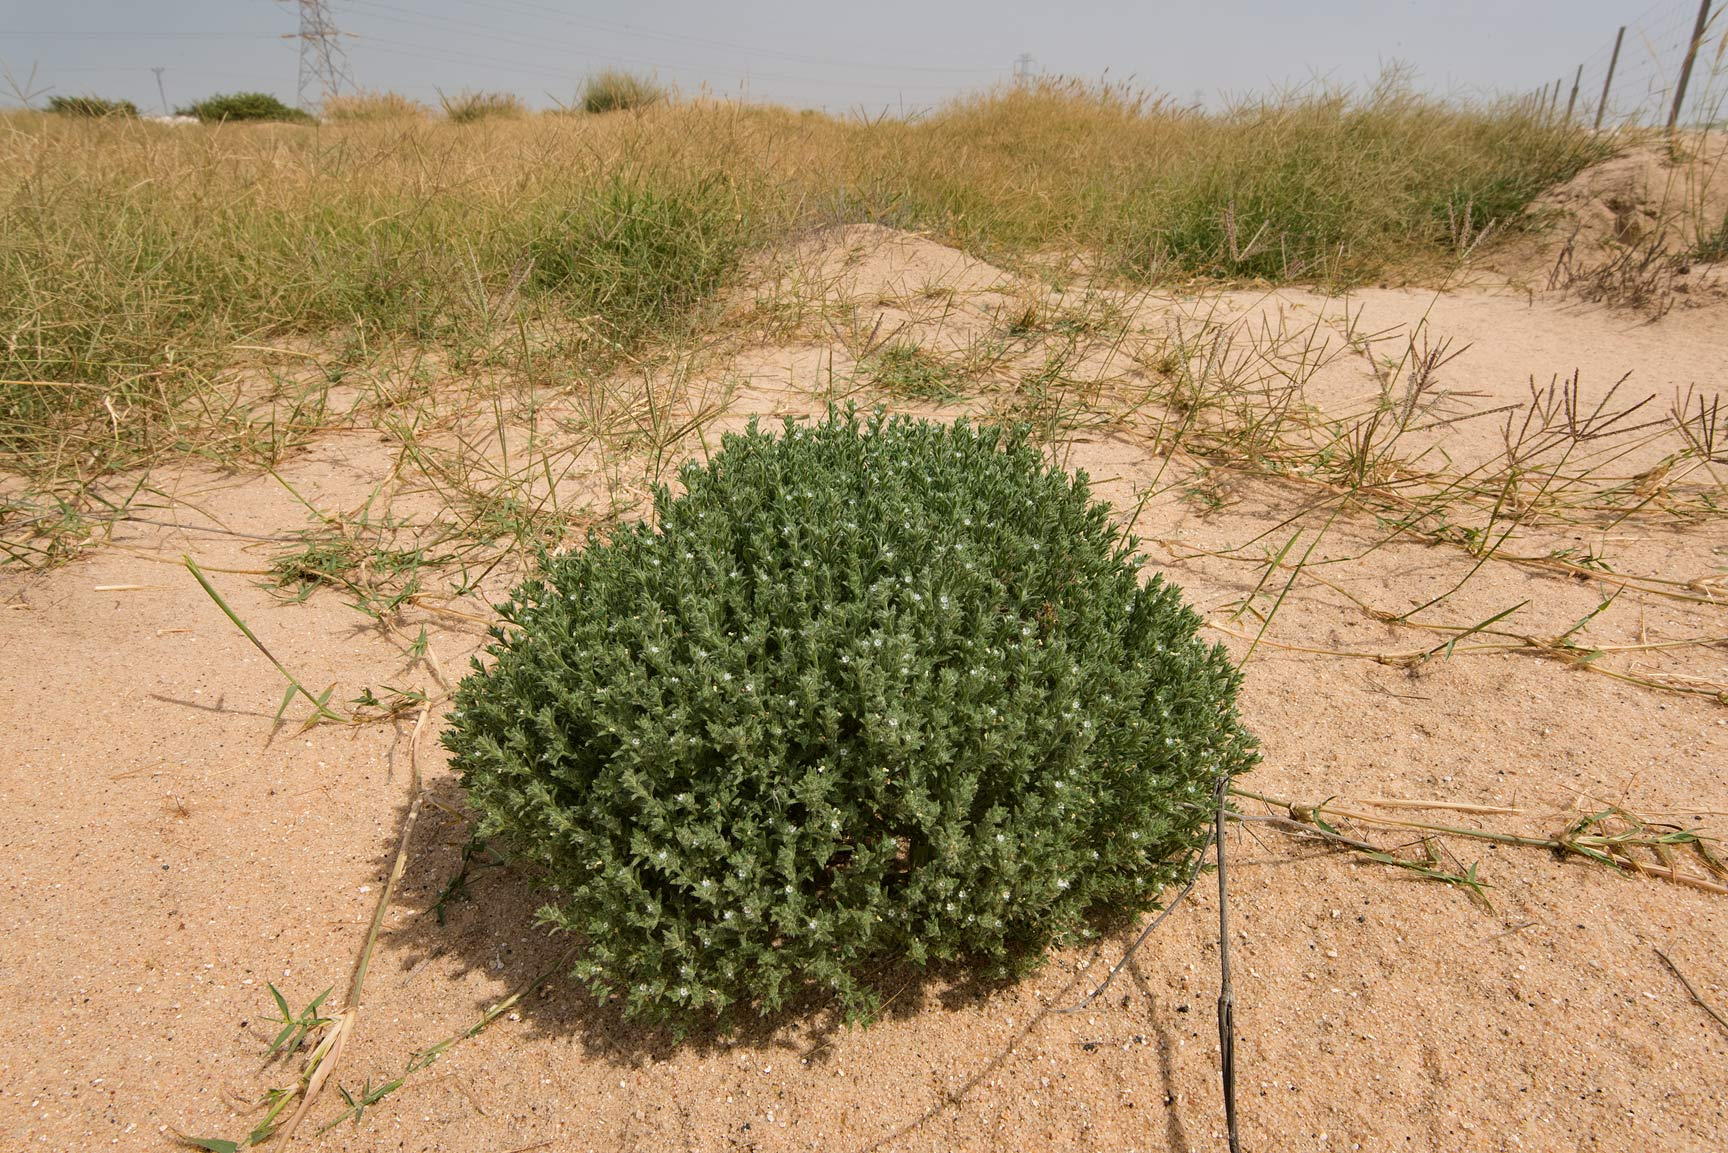 Compact bush of Ogastemma pusillum (Anchusa...from Khawzan to Al-Jumayliyah. Qatar